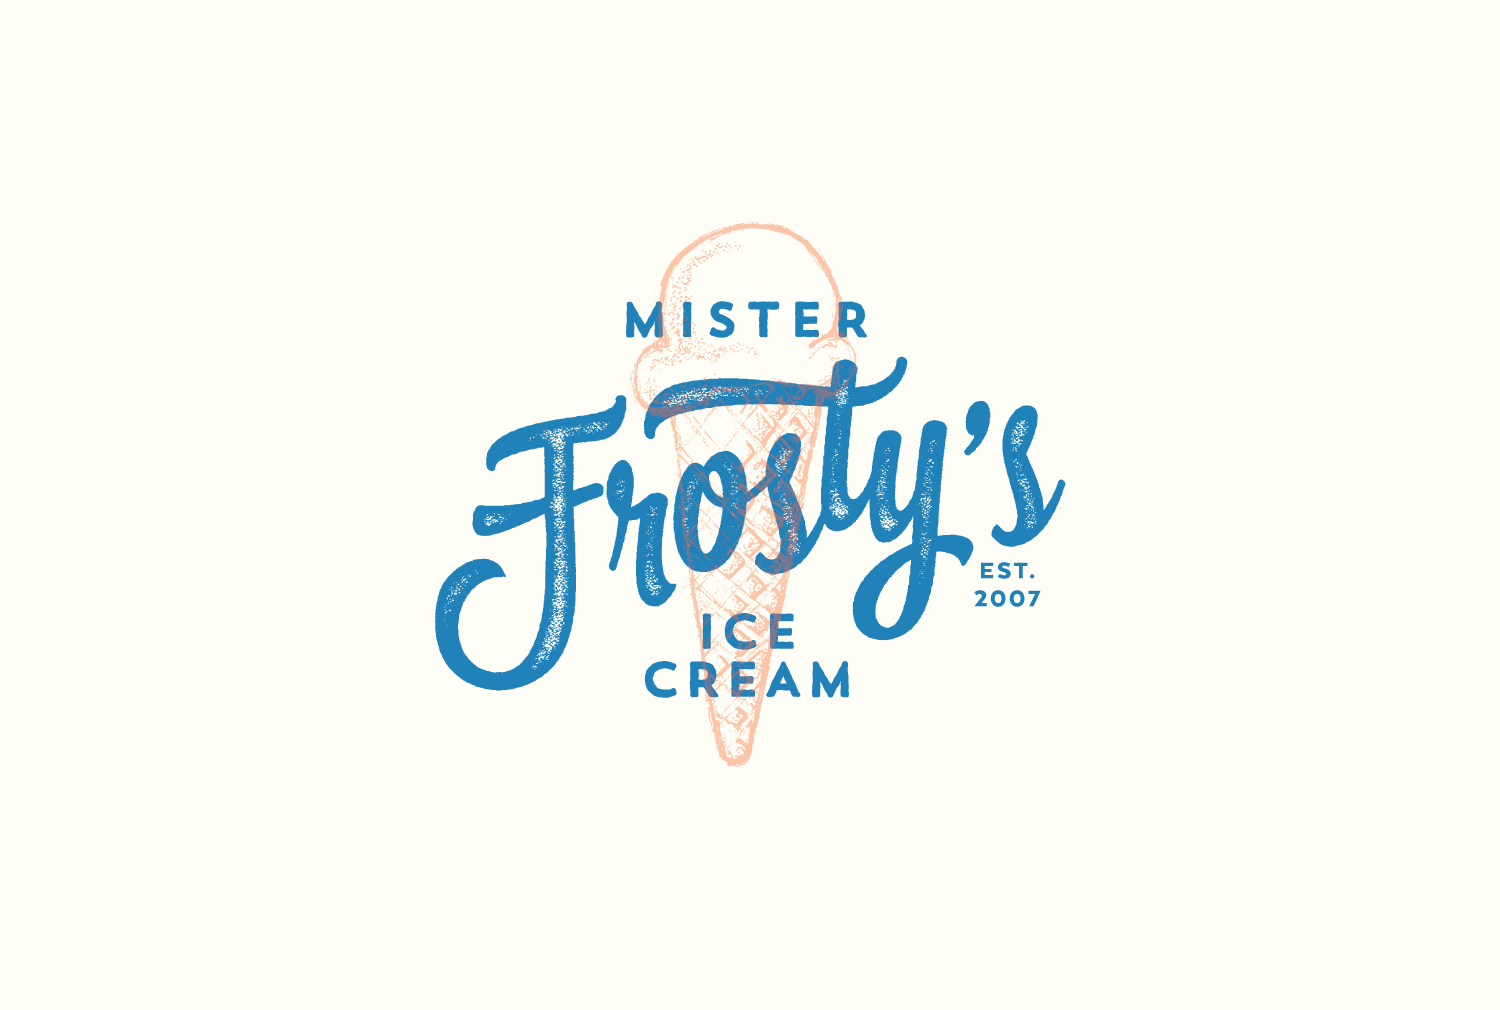 Mister Frosty's Ice Cream logo